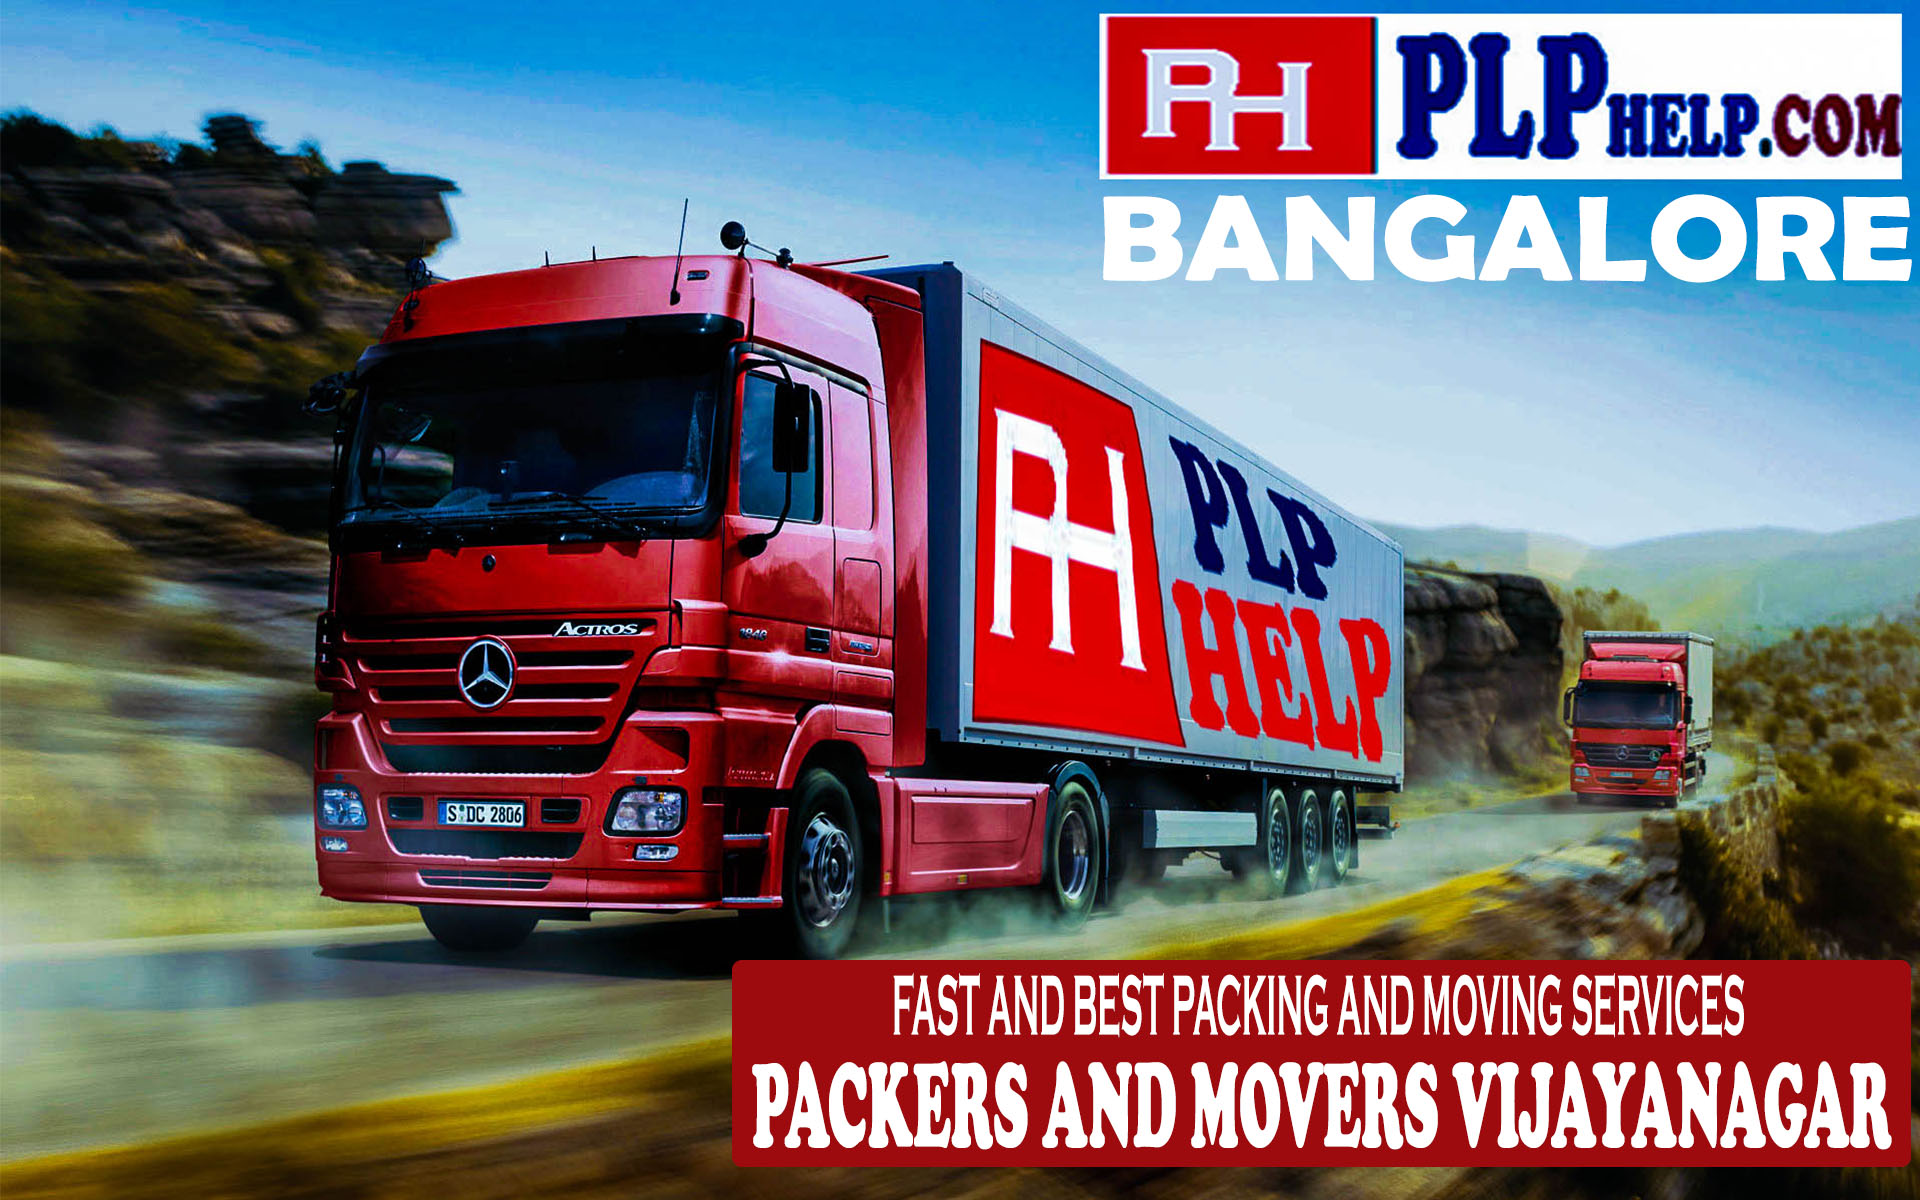 Packers And Movers Vijayanagar